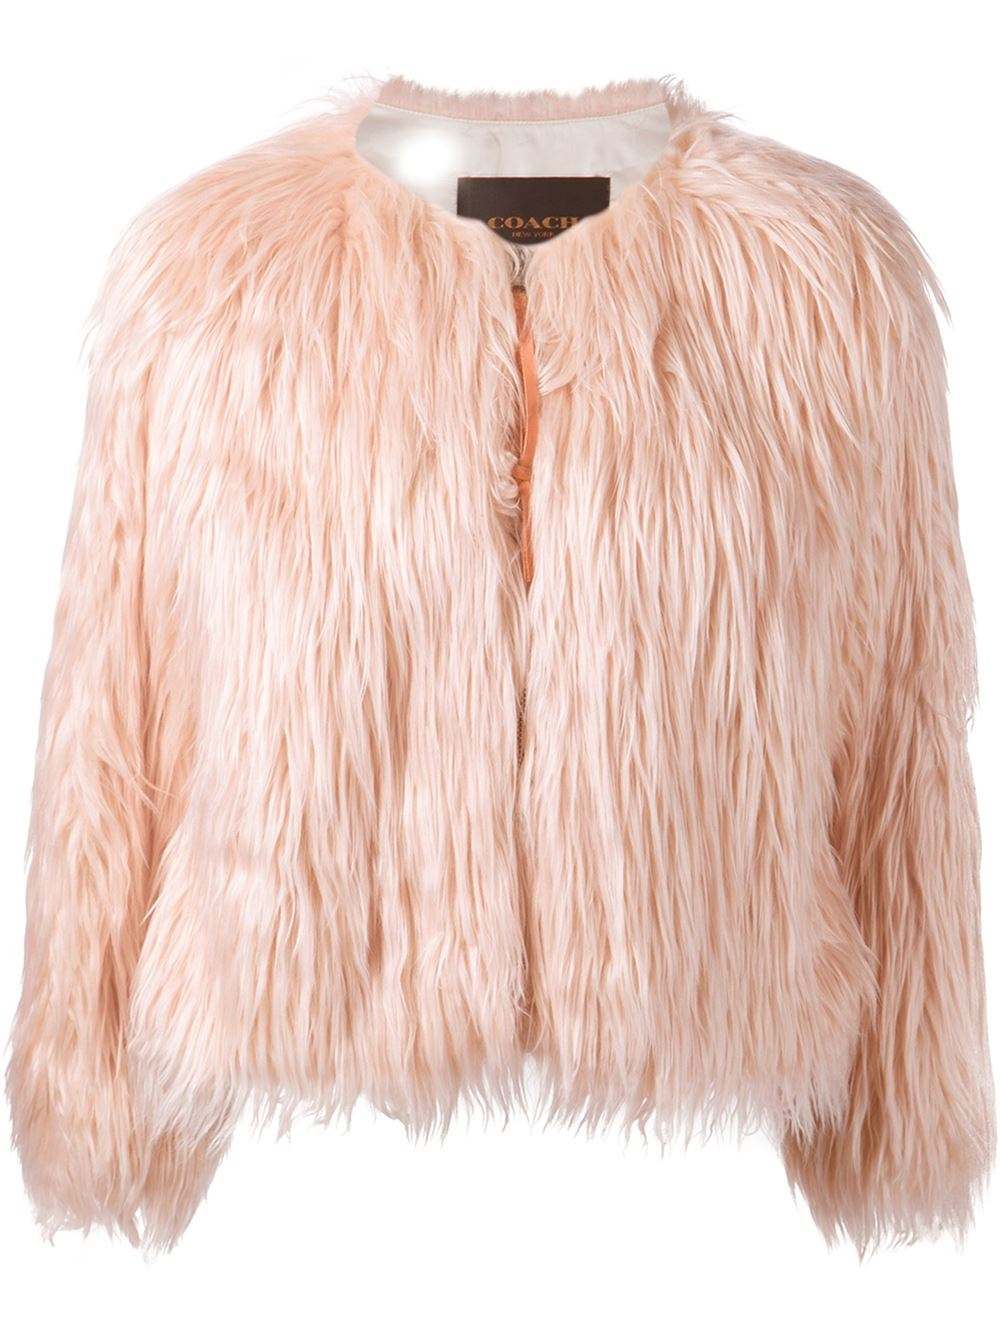 Coach Cropped Fluffy Jacket in Pink | Lyst